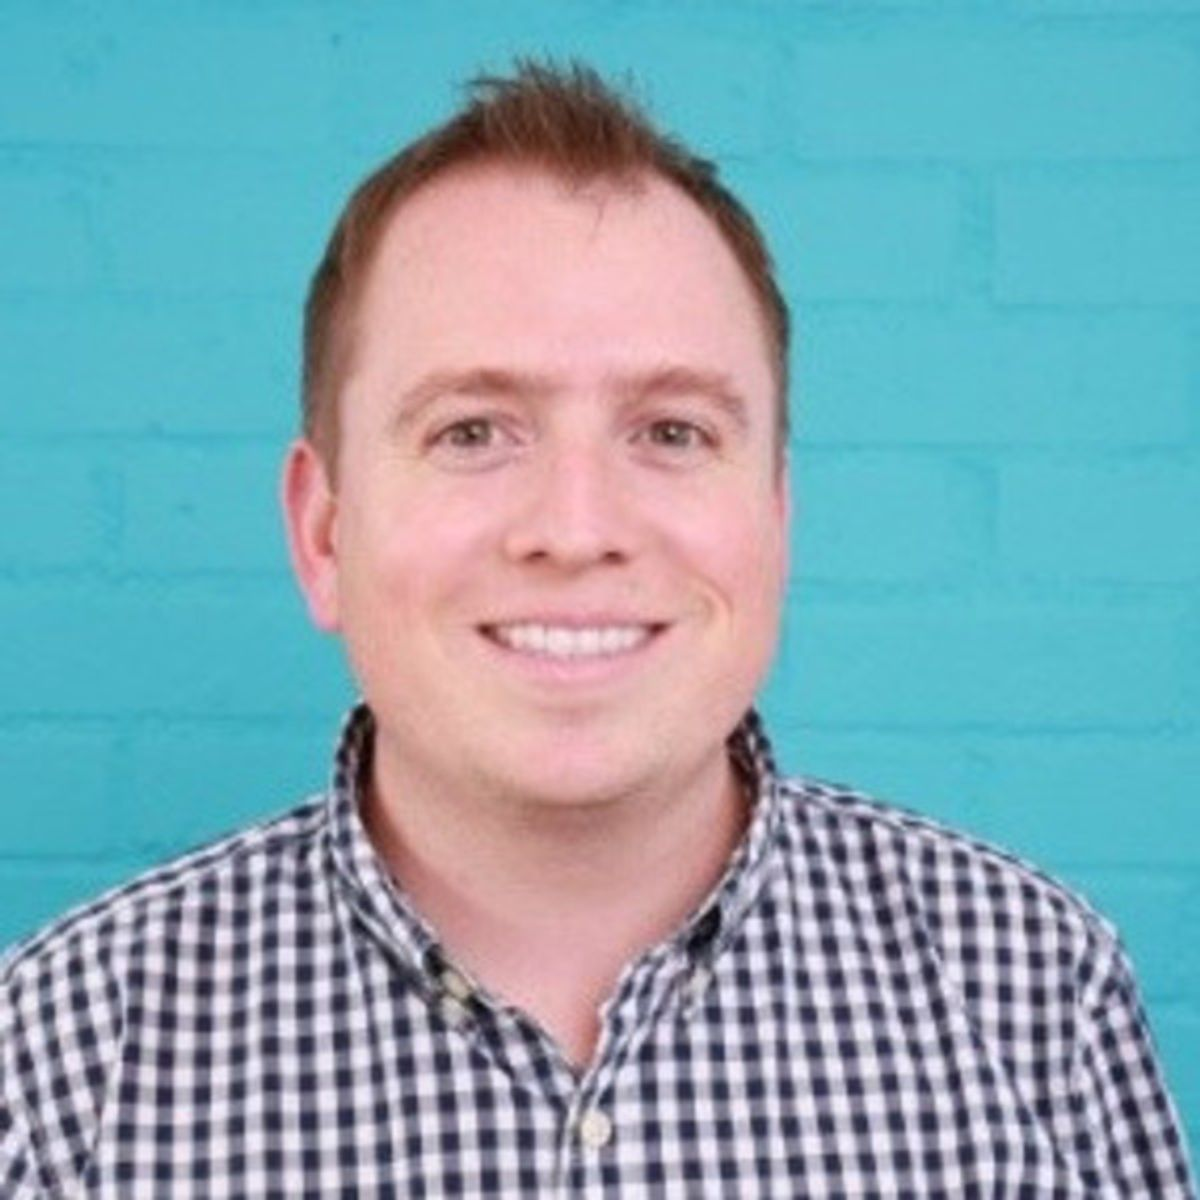 Photo of Stu Smith, Managing Partner at Coughdrop Capital